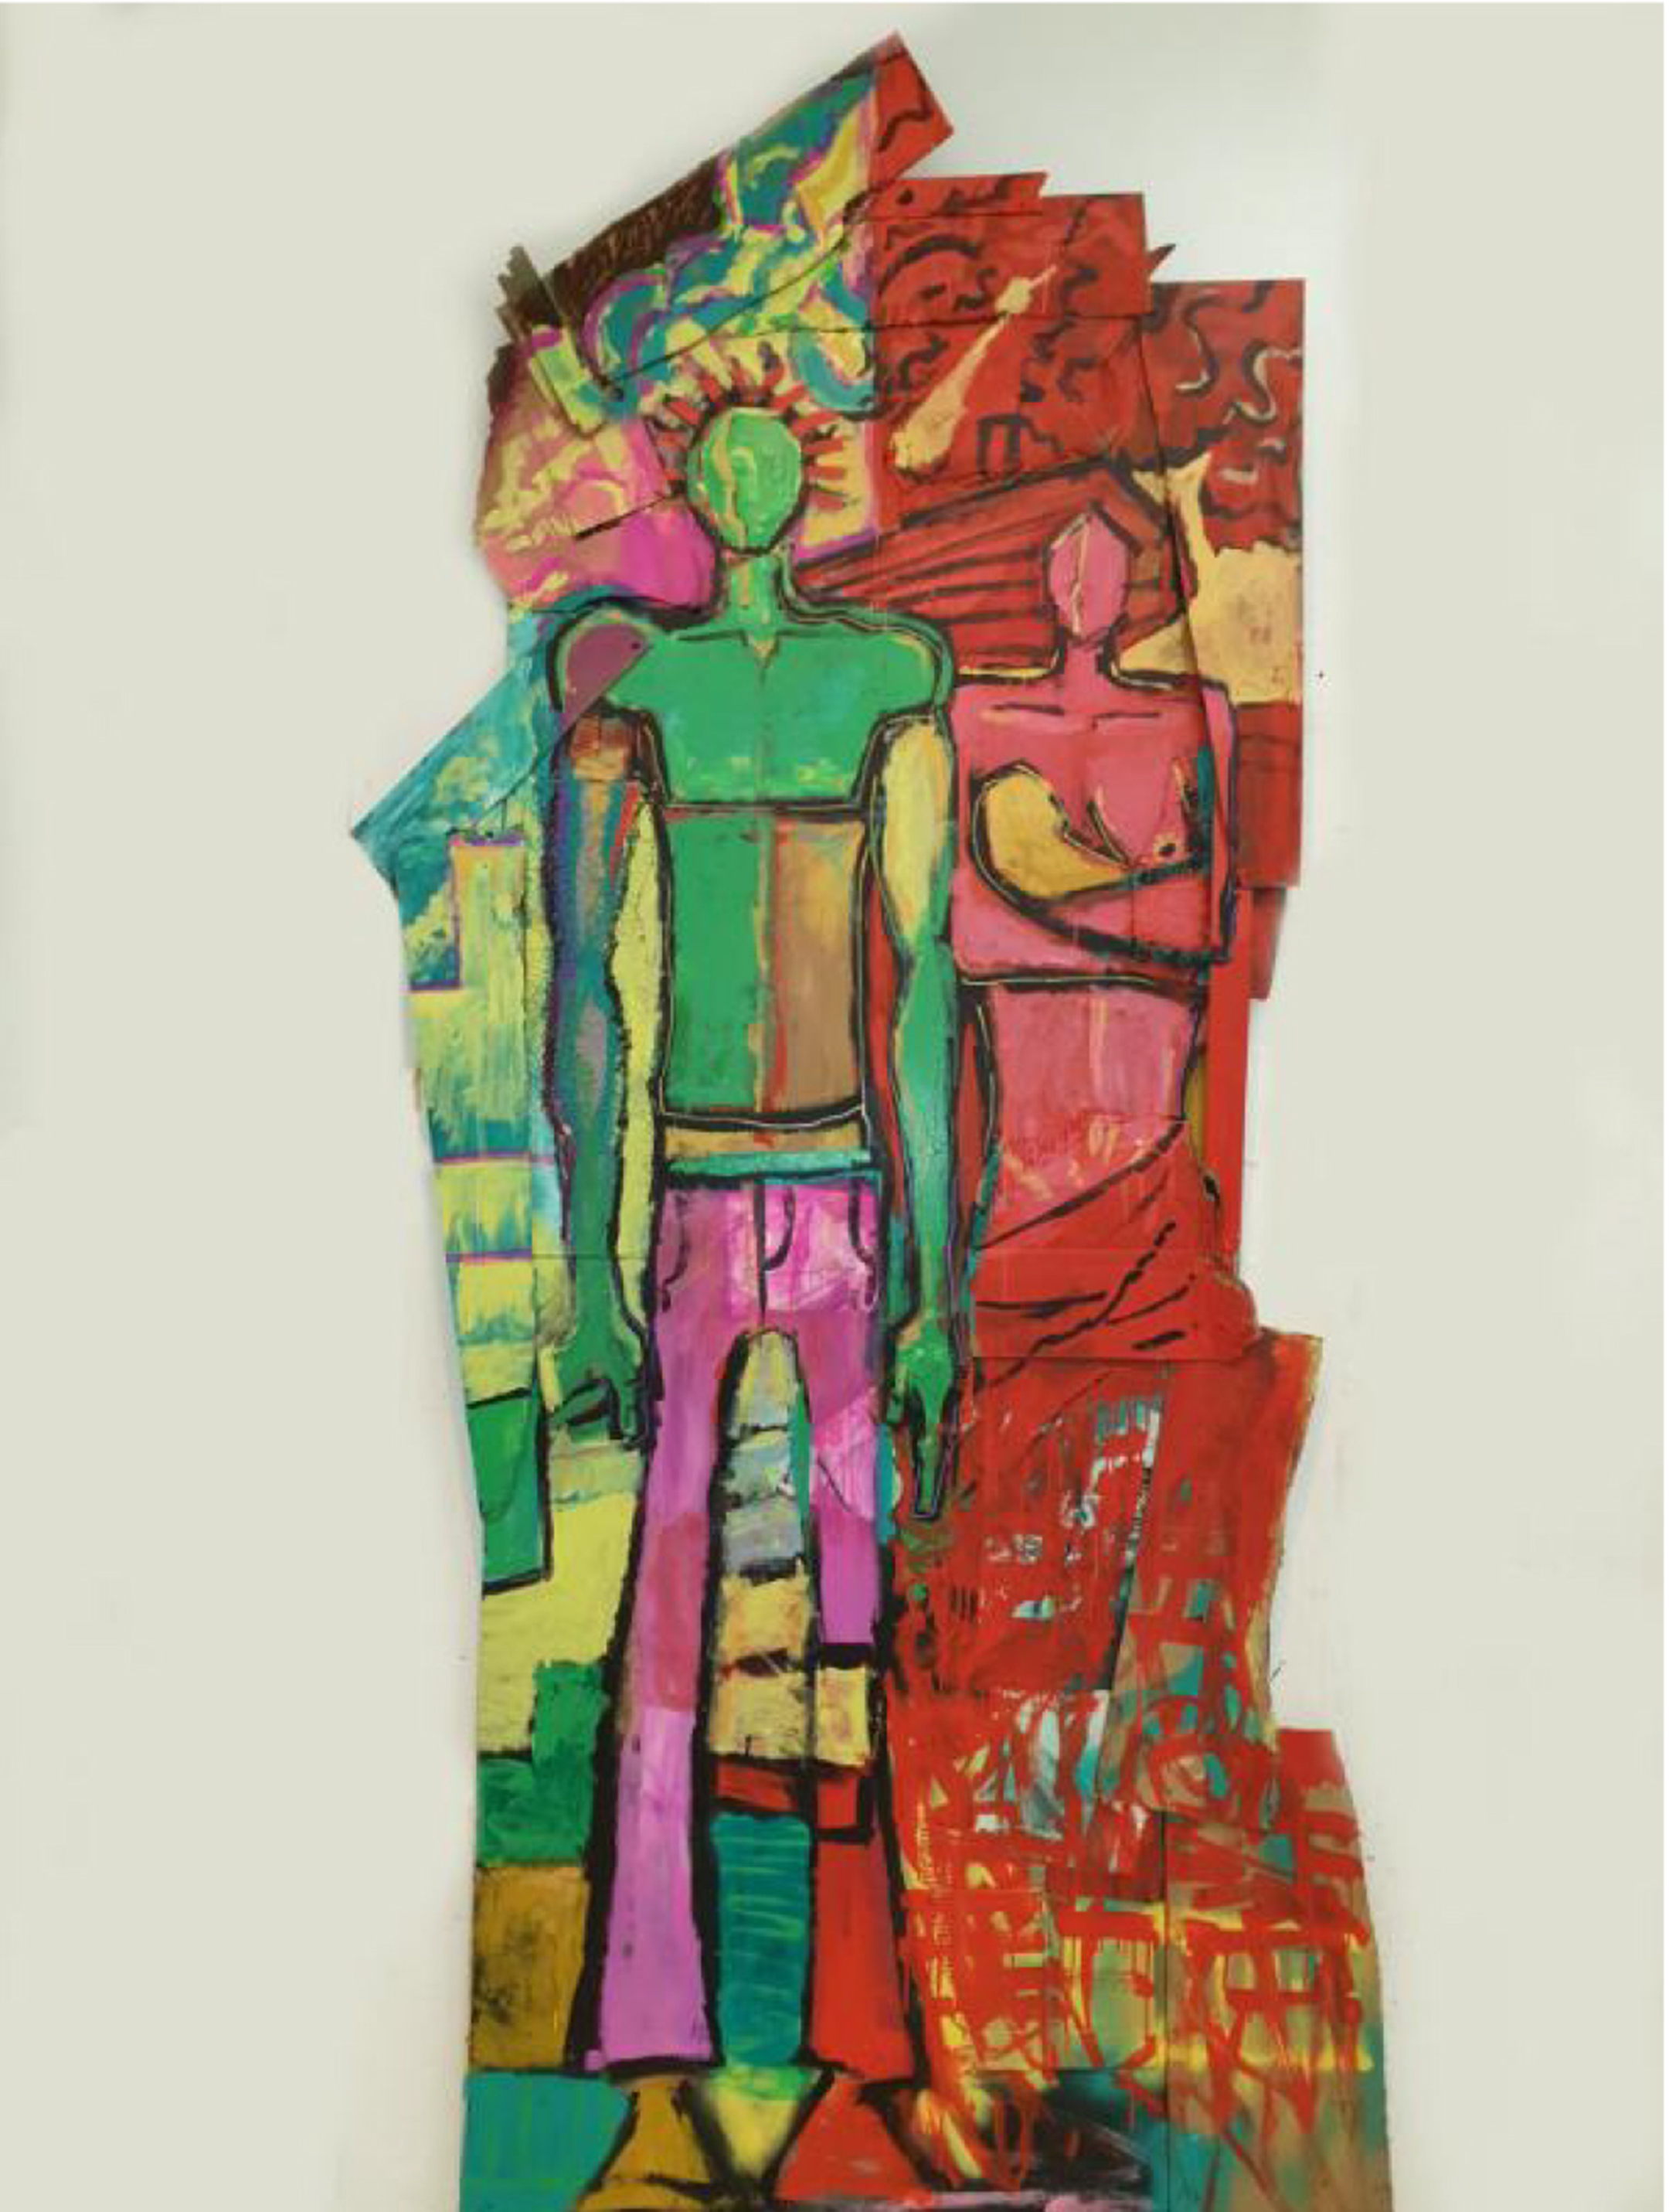 Large vertical art work with abstract human forms painted in green, pink, red, and yellow